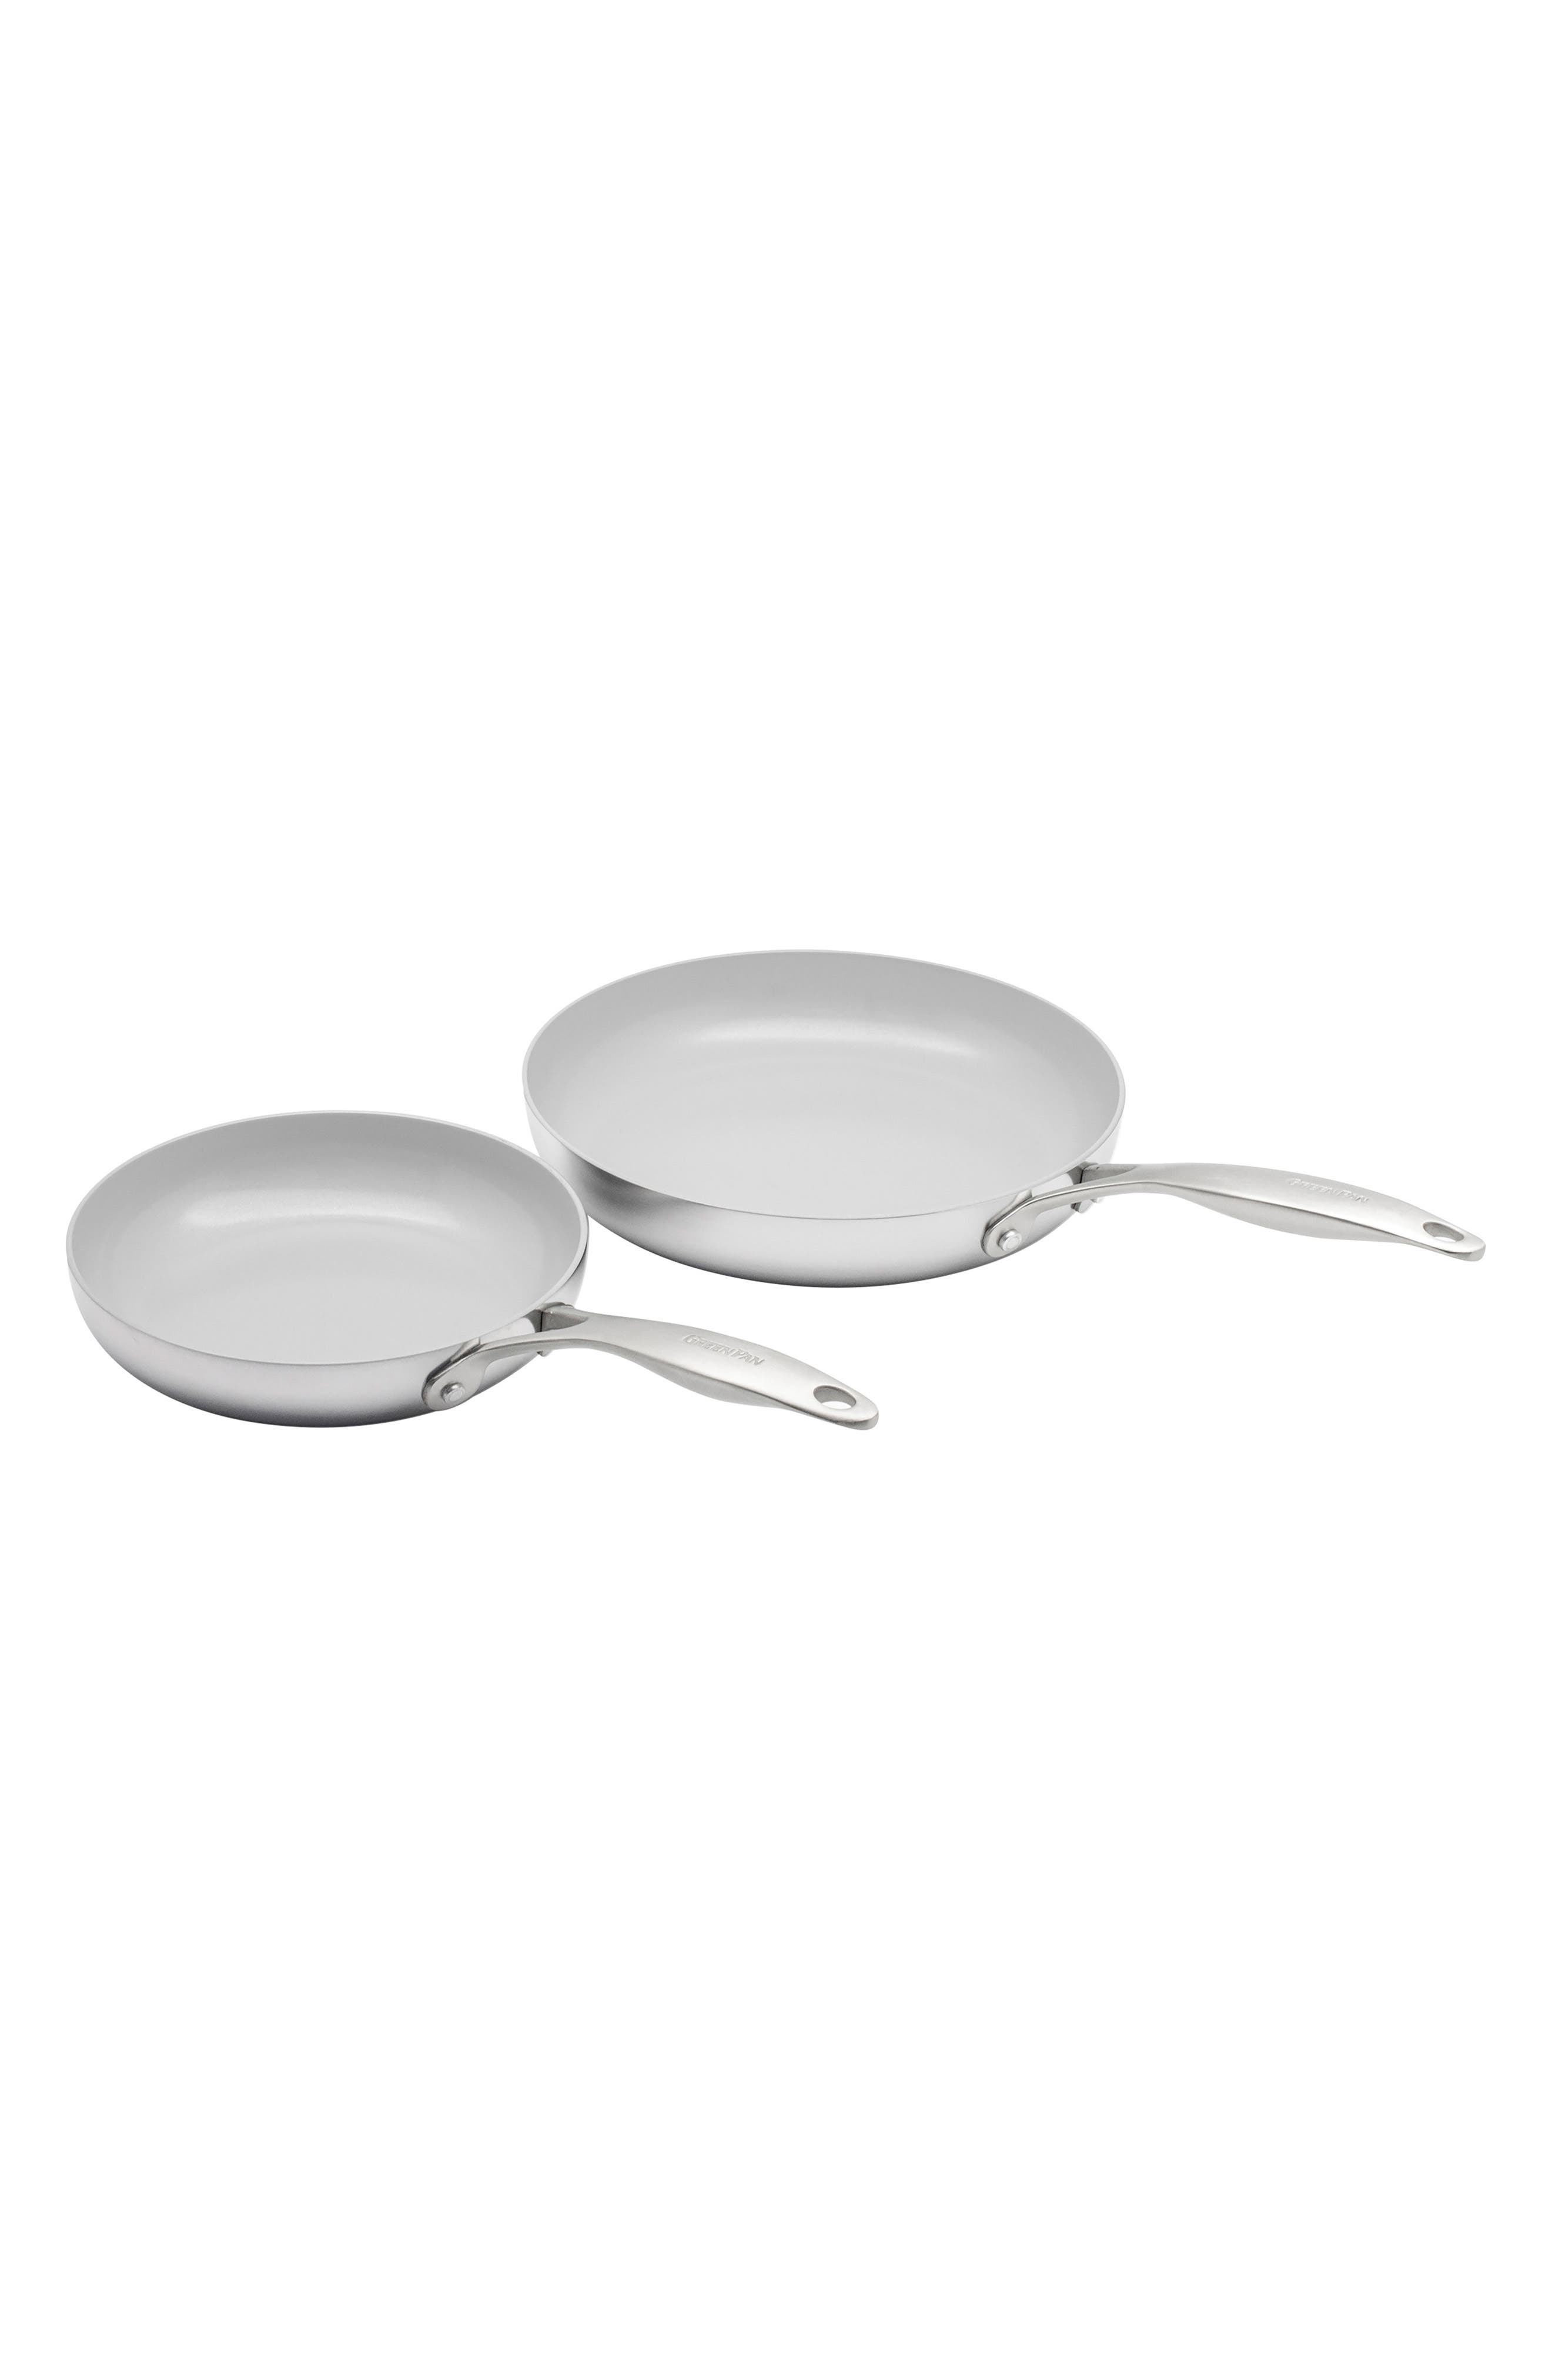 GREENPAN, Venice Pro 8-Inch & 10-Inch Multilayer Stainless Steel Ceramic Nonstick Frying Pan Set, Main thumbnail 1, color, STAINLESS STEEL